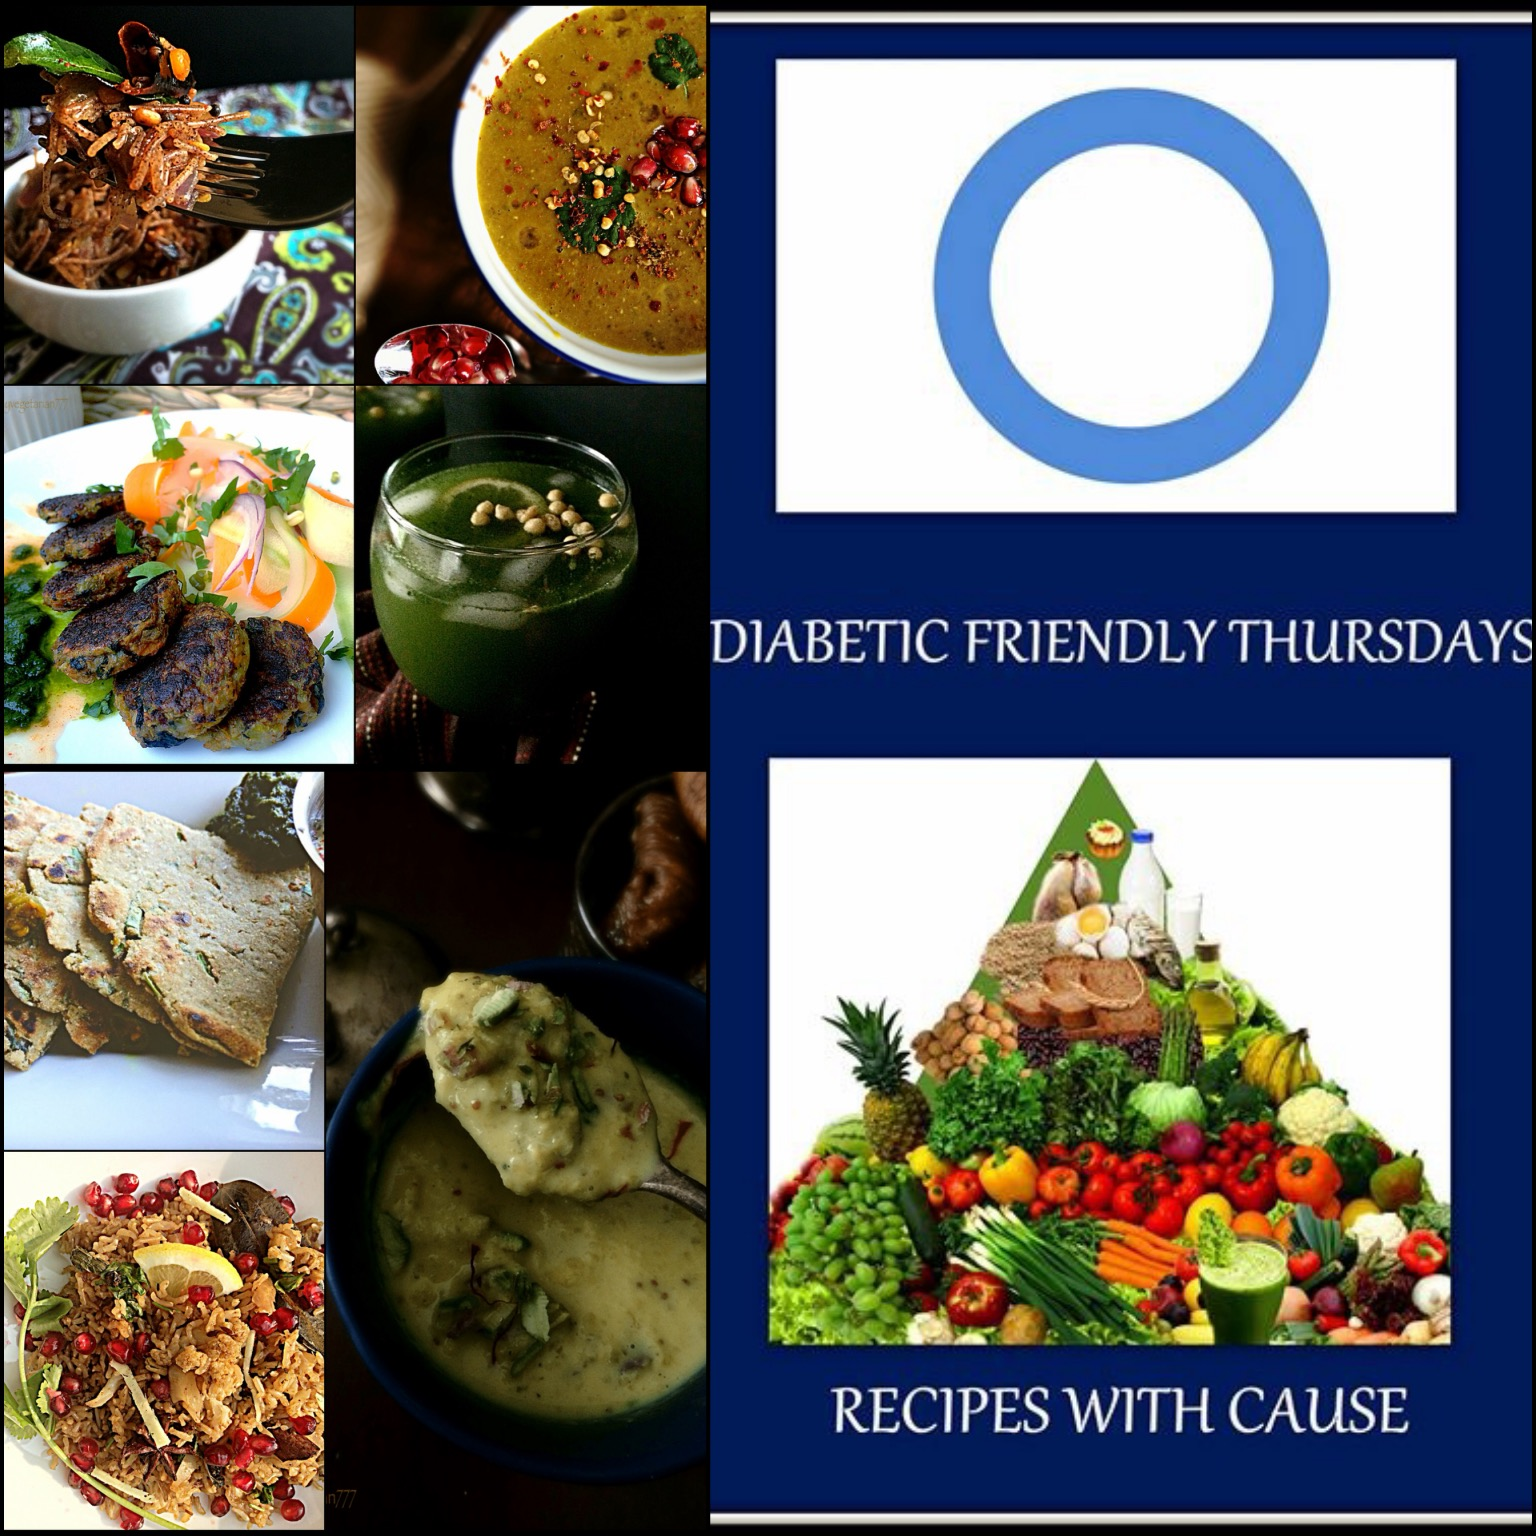 Diabetes friendly thursdays healthy recipes archives image forumfinder Choice Image